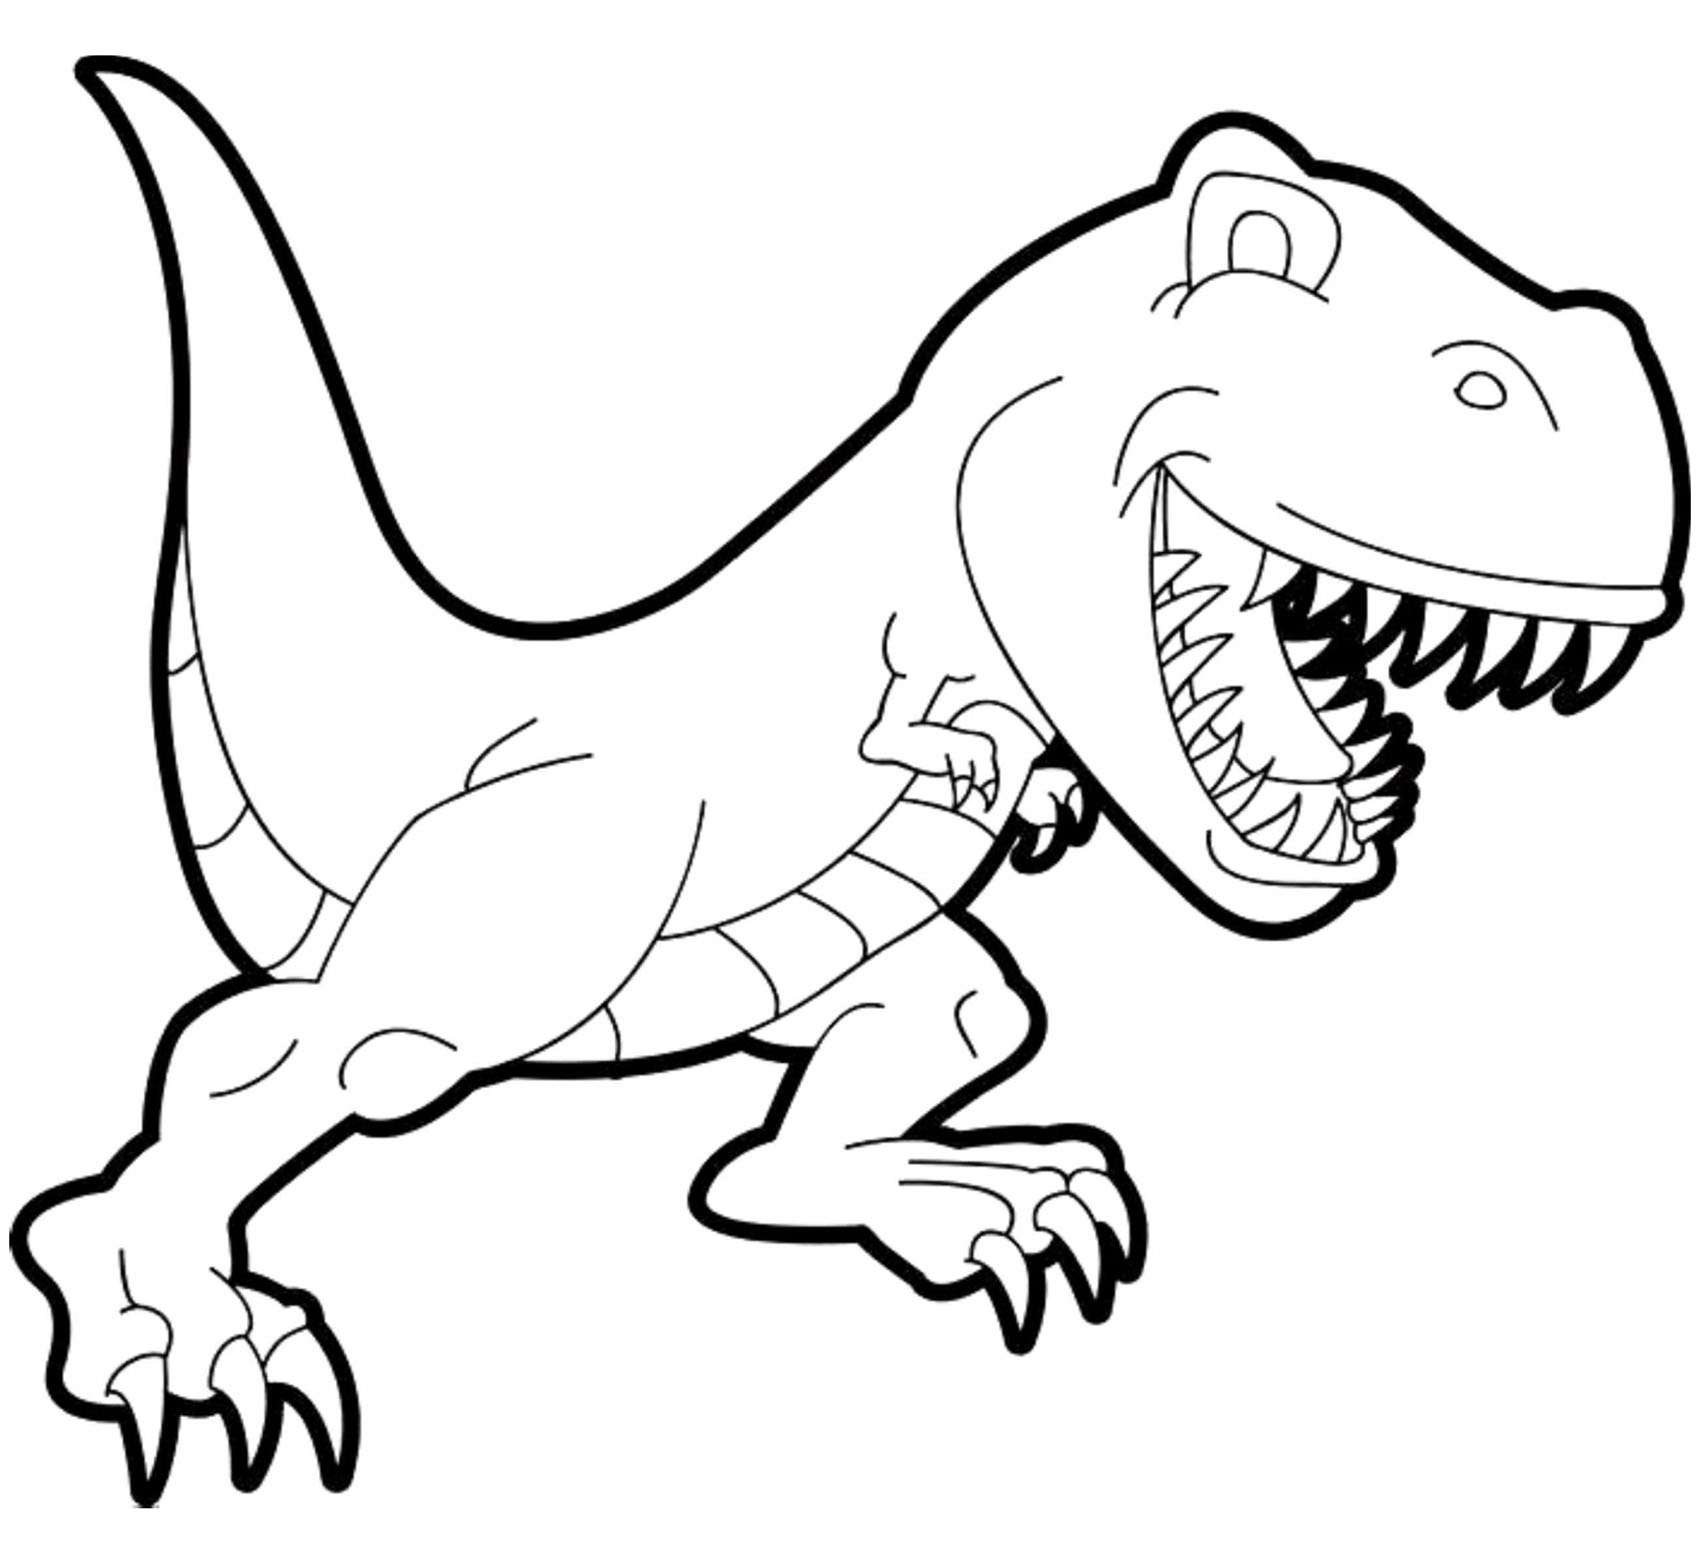 Dinosaurs Free To Color For Kids Tyrannosaur Rex Cartoon